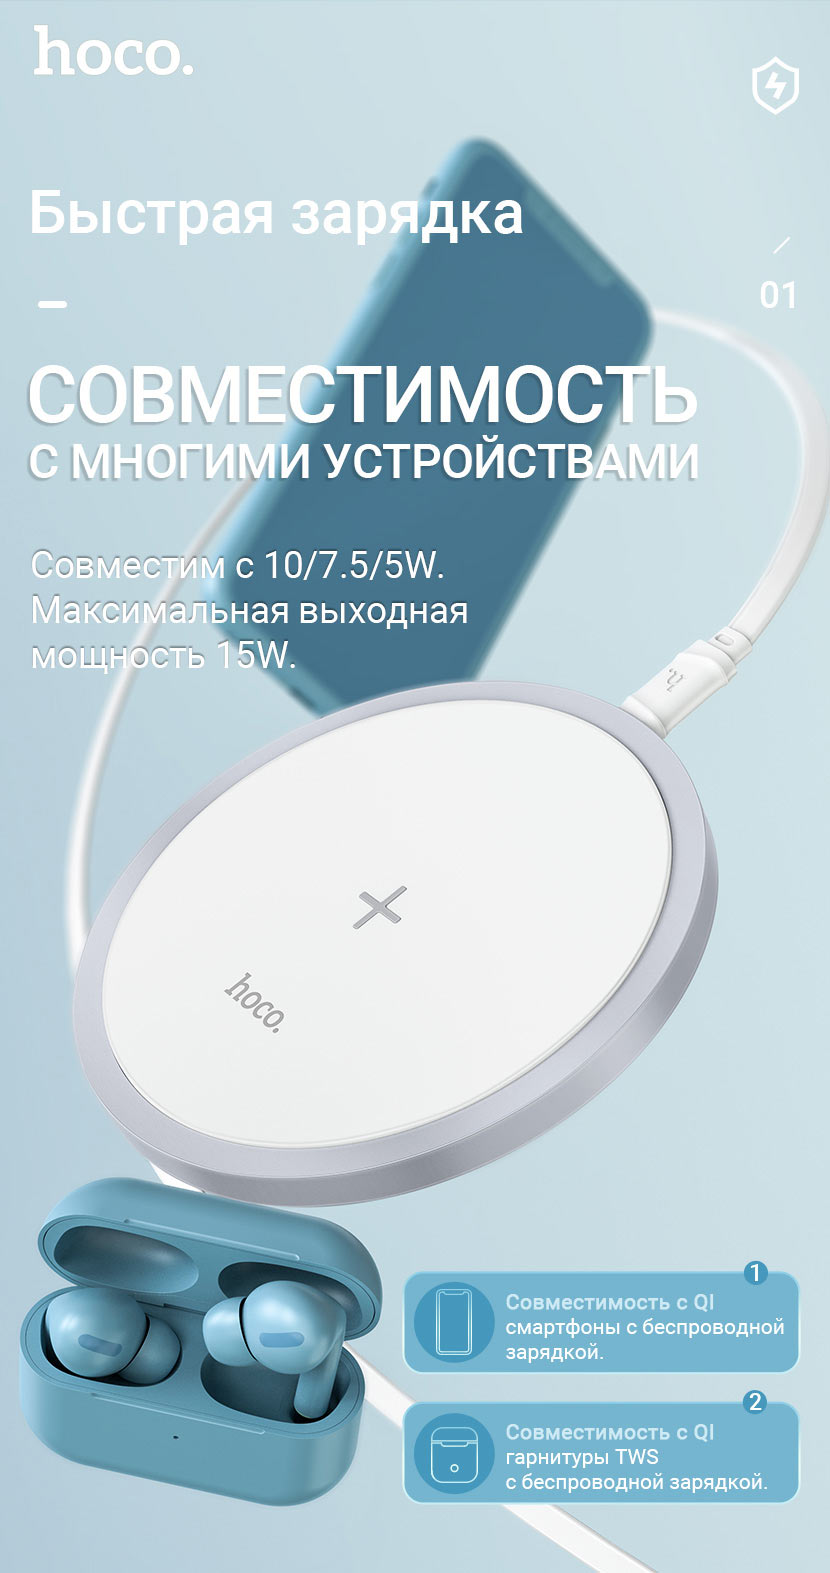 hoco news cw26 powerful 15w wireless fast charger output ru